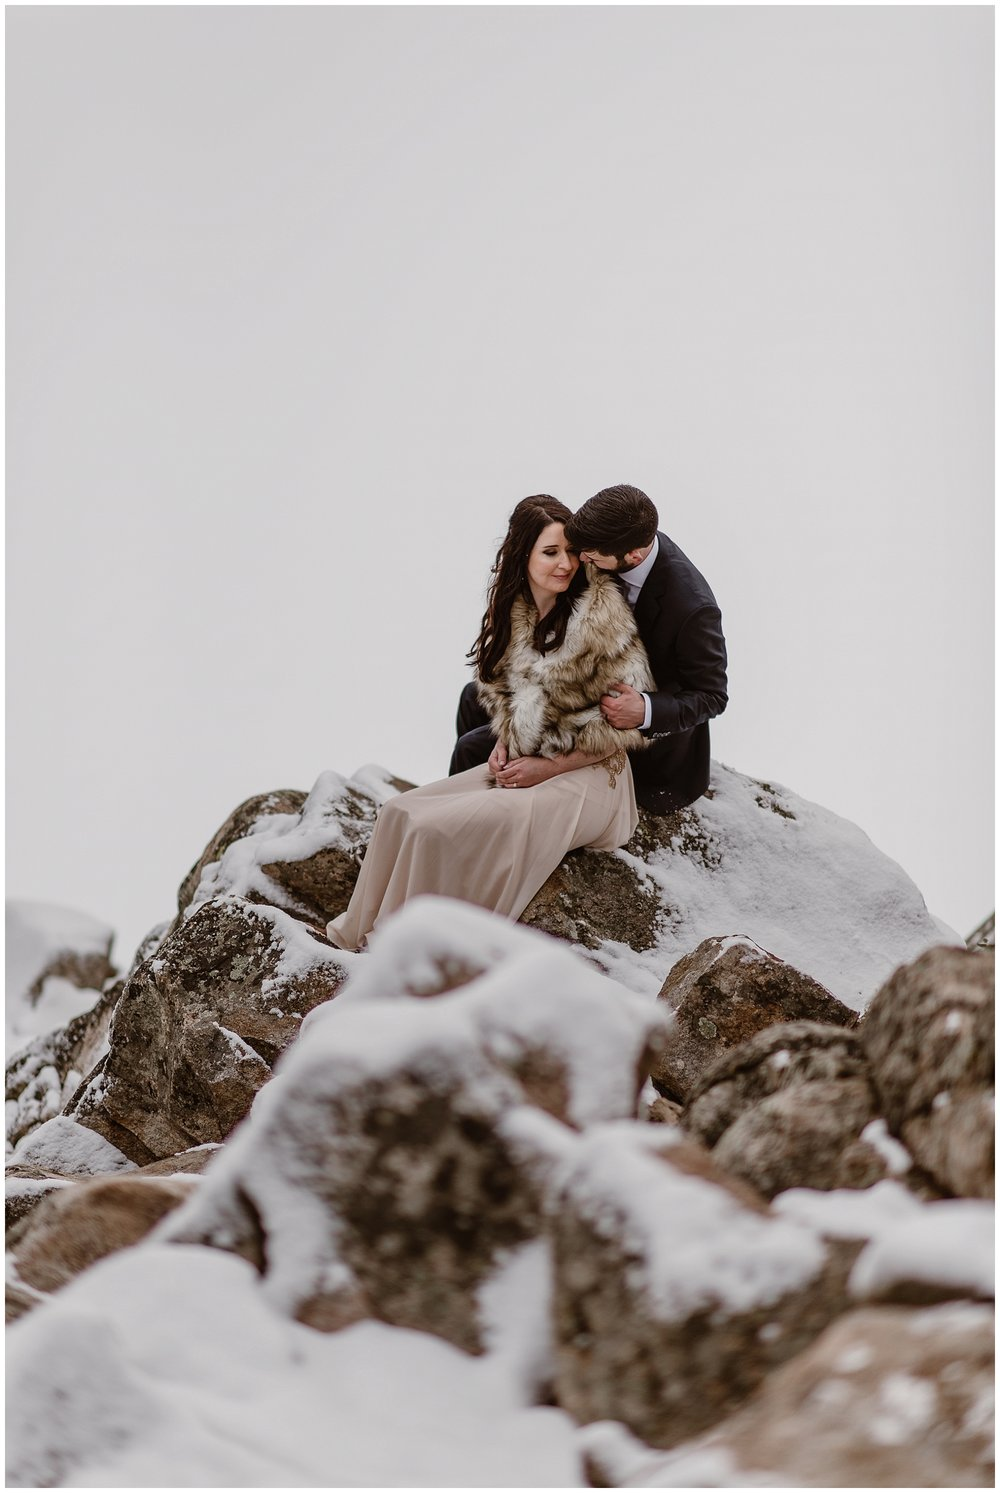 To stay warm during a winter elopement, it's important to take lots of breaks, wear a warm coat and dress in lots of layers. Marlayna and Austin eloped at Sapphire Point in Dillon, Colorado. Photo by Adventure Instead, Maddie Mae Elopement Photographers.